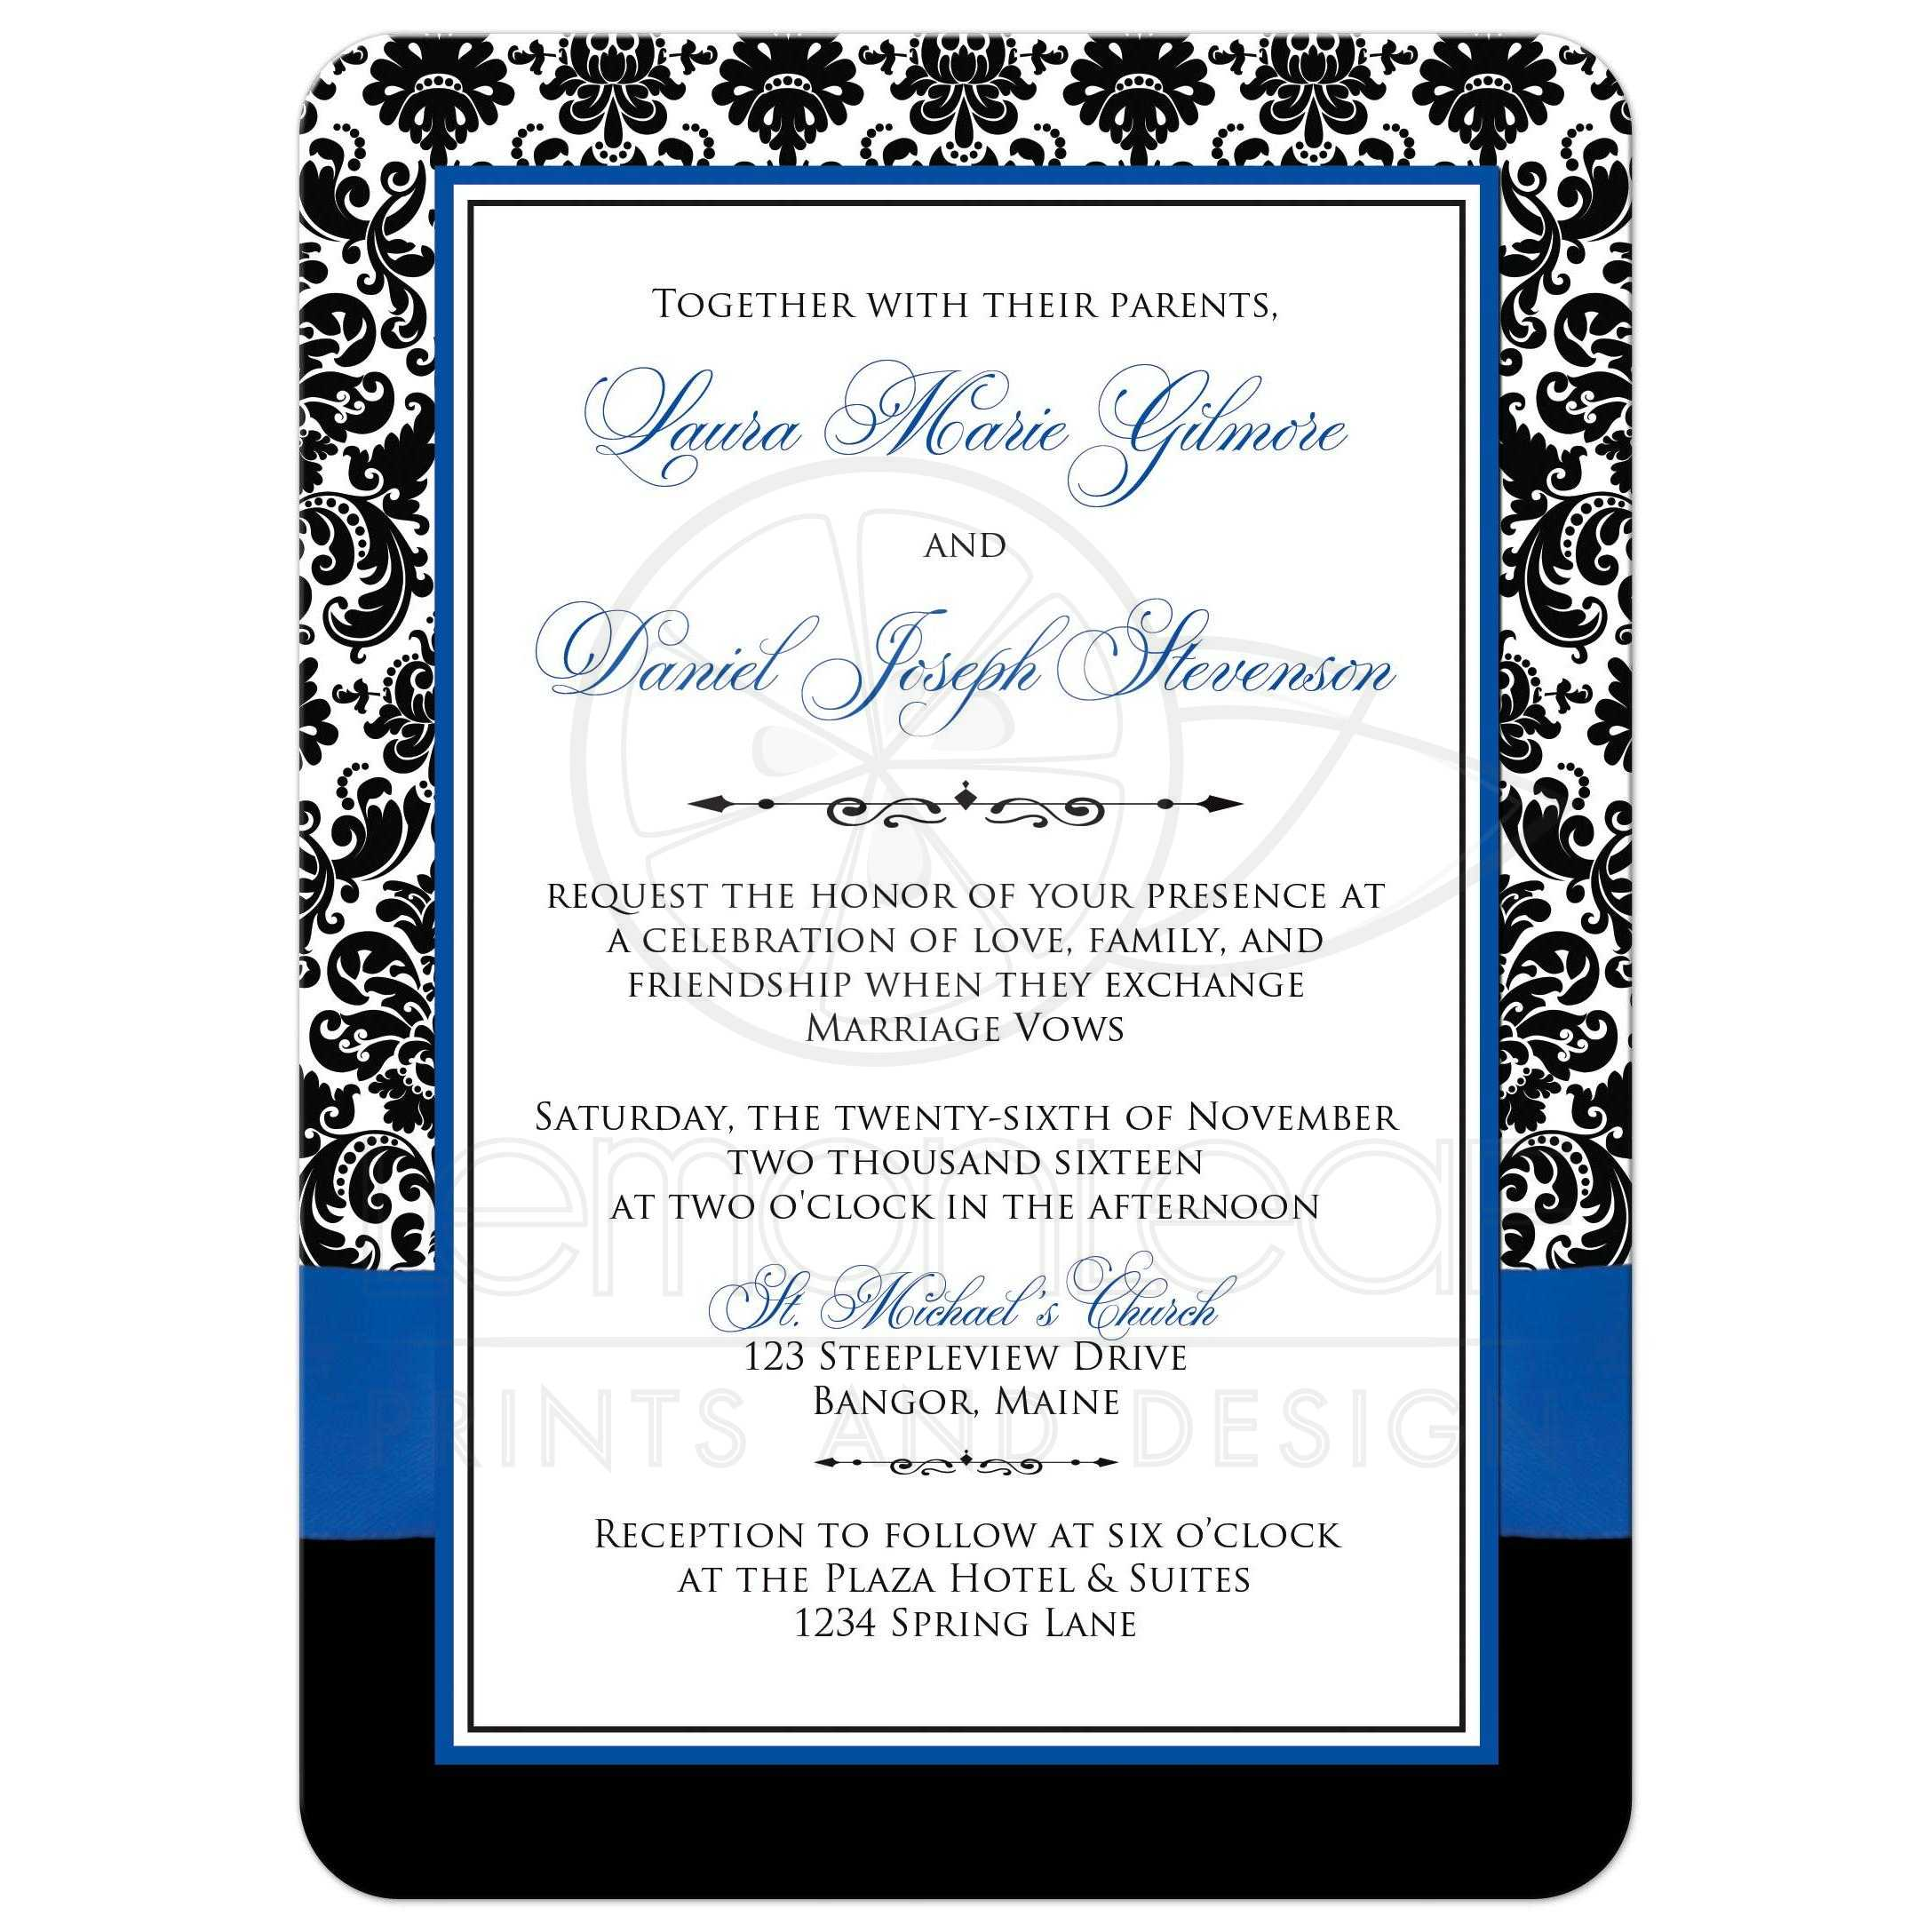 Holiday Party Invite Template as luxury invitations ideas